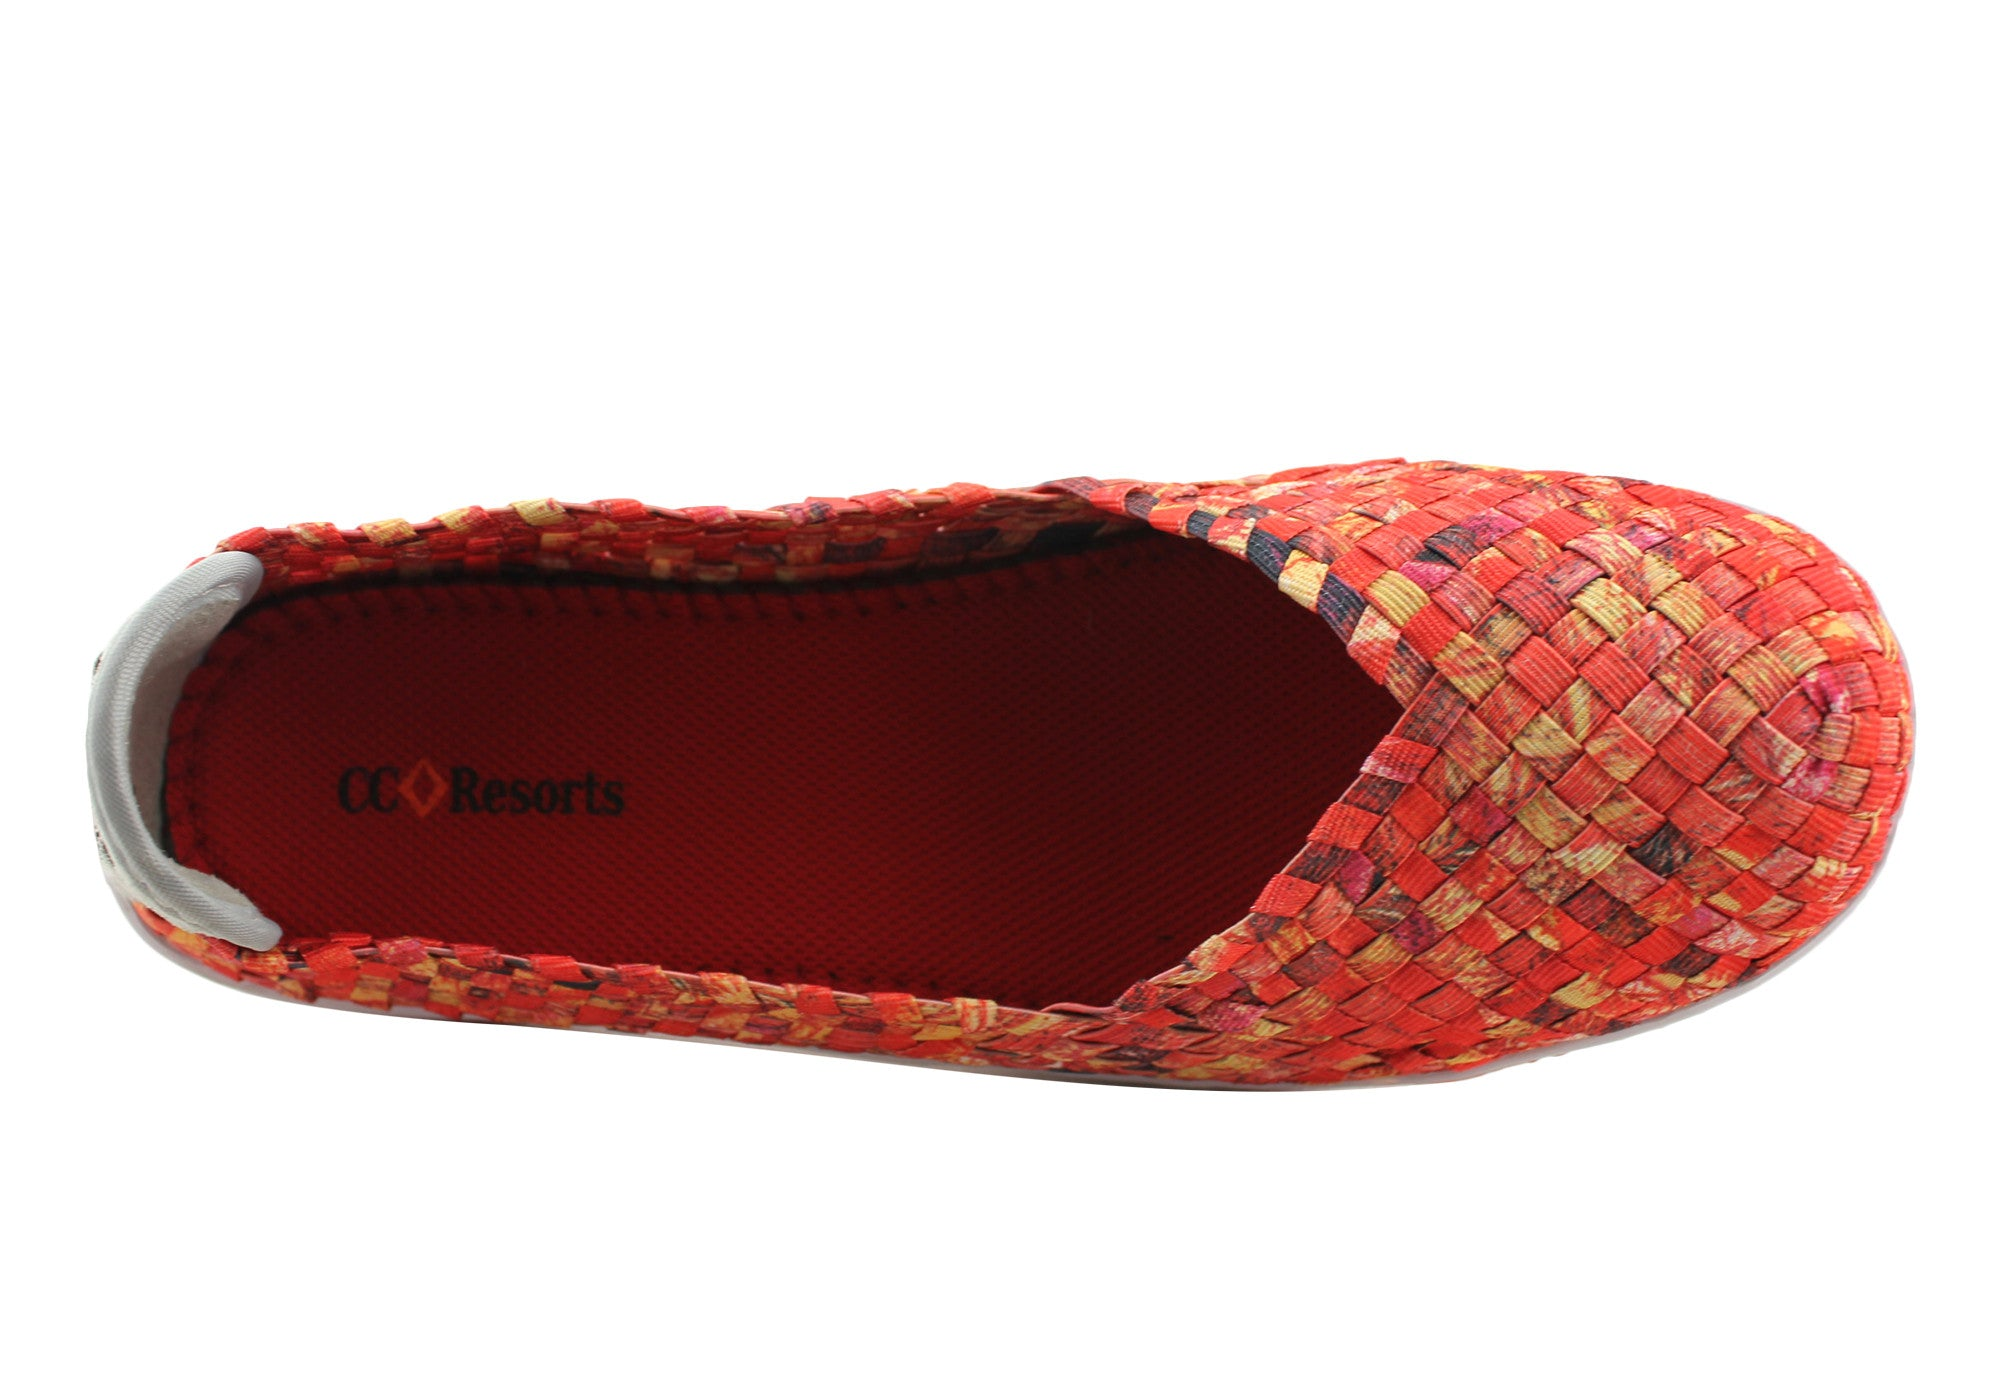 CC Resorts Sugar Womens Comfy Memory Foam Casual Flats